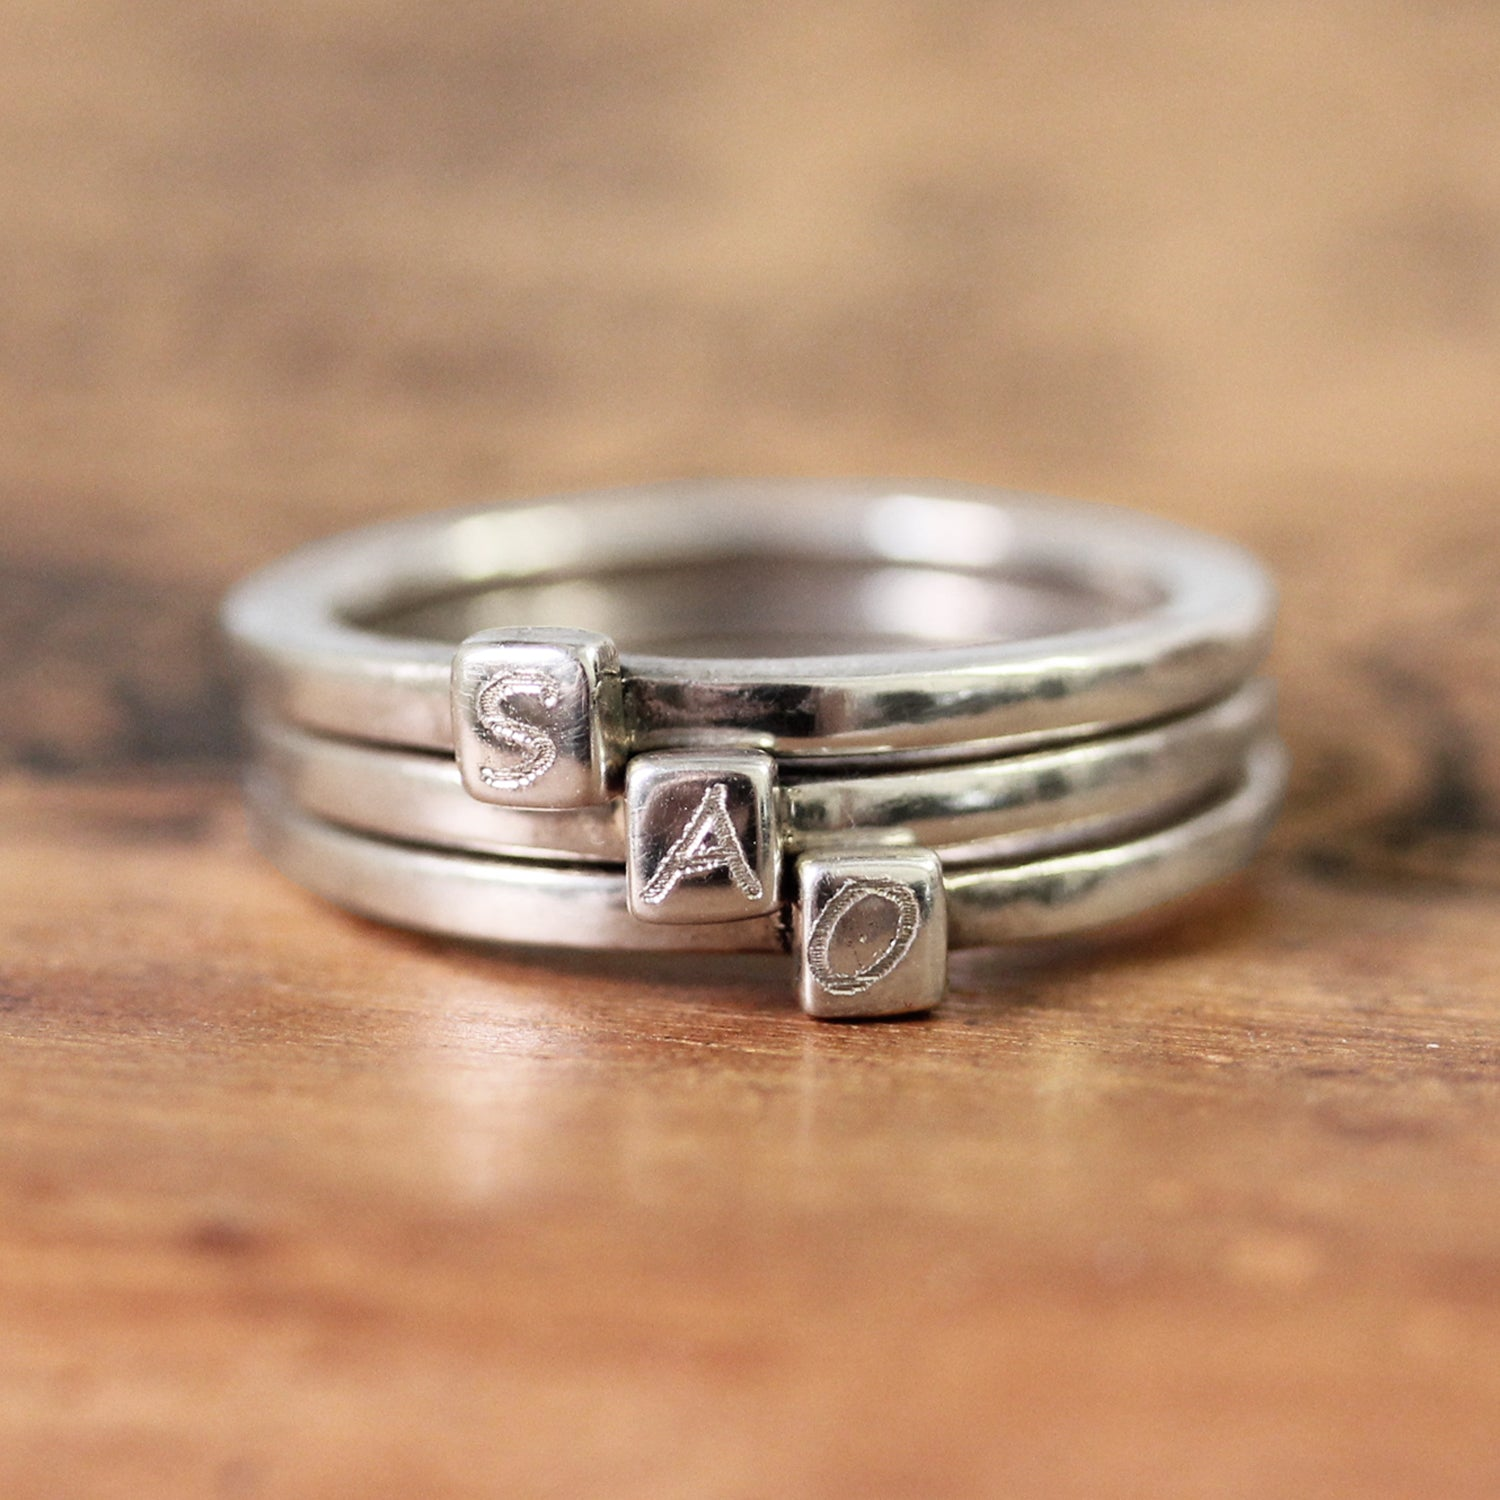 Modern Monogram Initial Ring, sterling silver